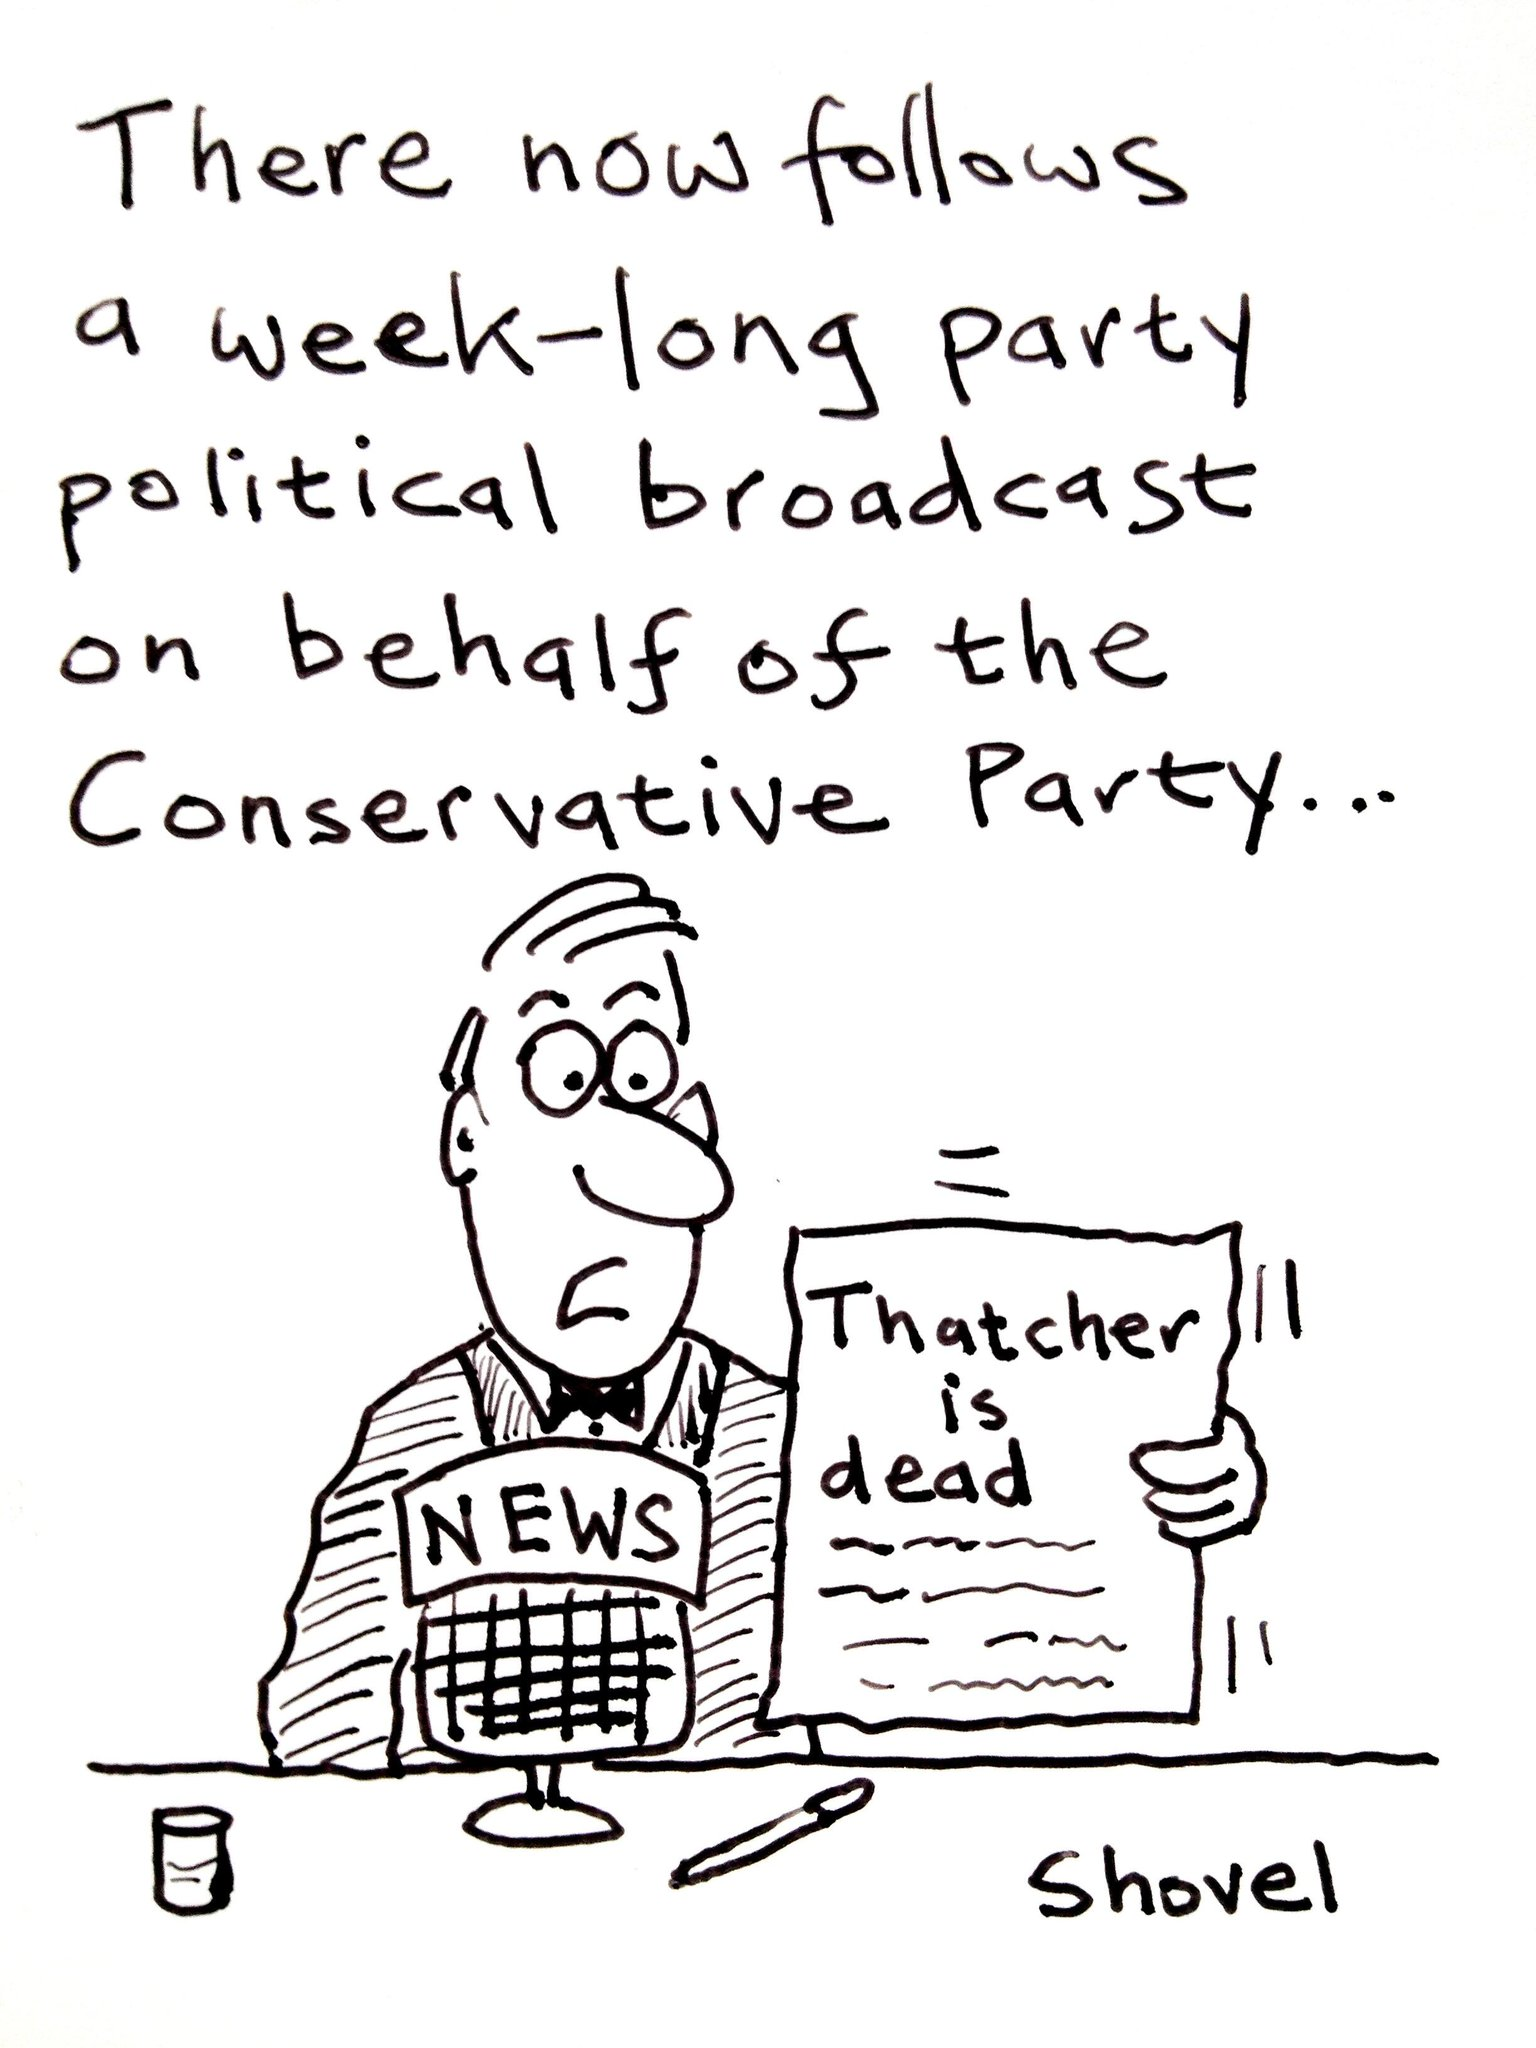 RT @MartinShovel: My cartoon - there now follows a week-long party political broadcast on behalf of the Conservatives #Thatcher http://t.co/VXcbNXfPzt